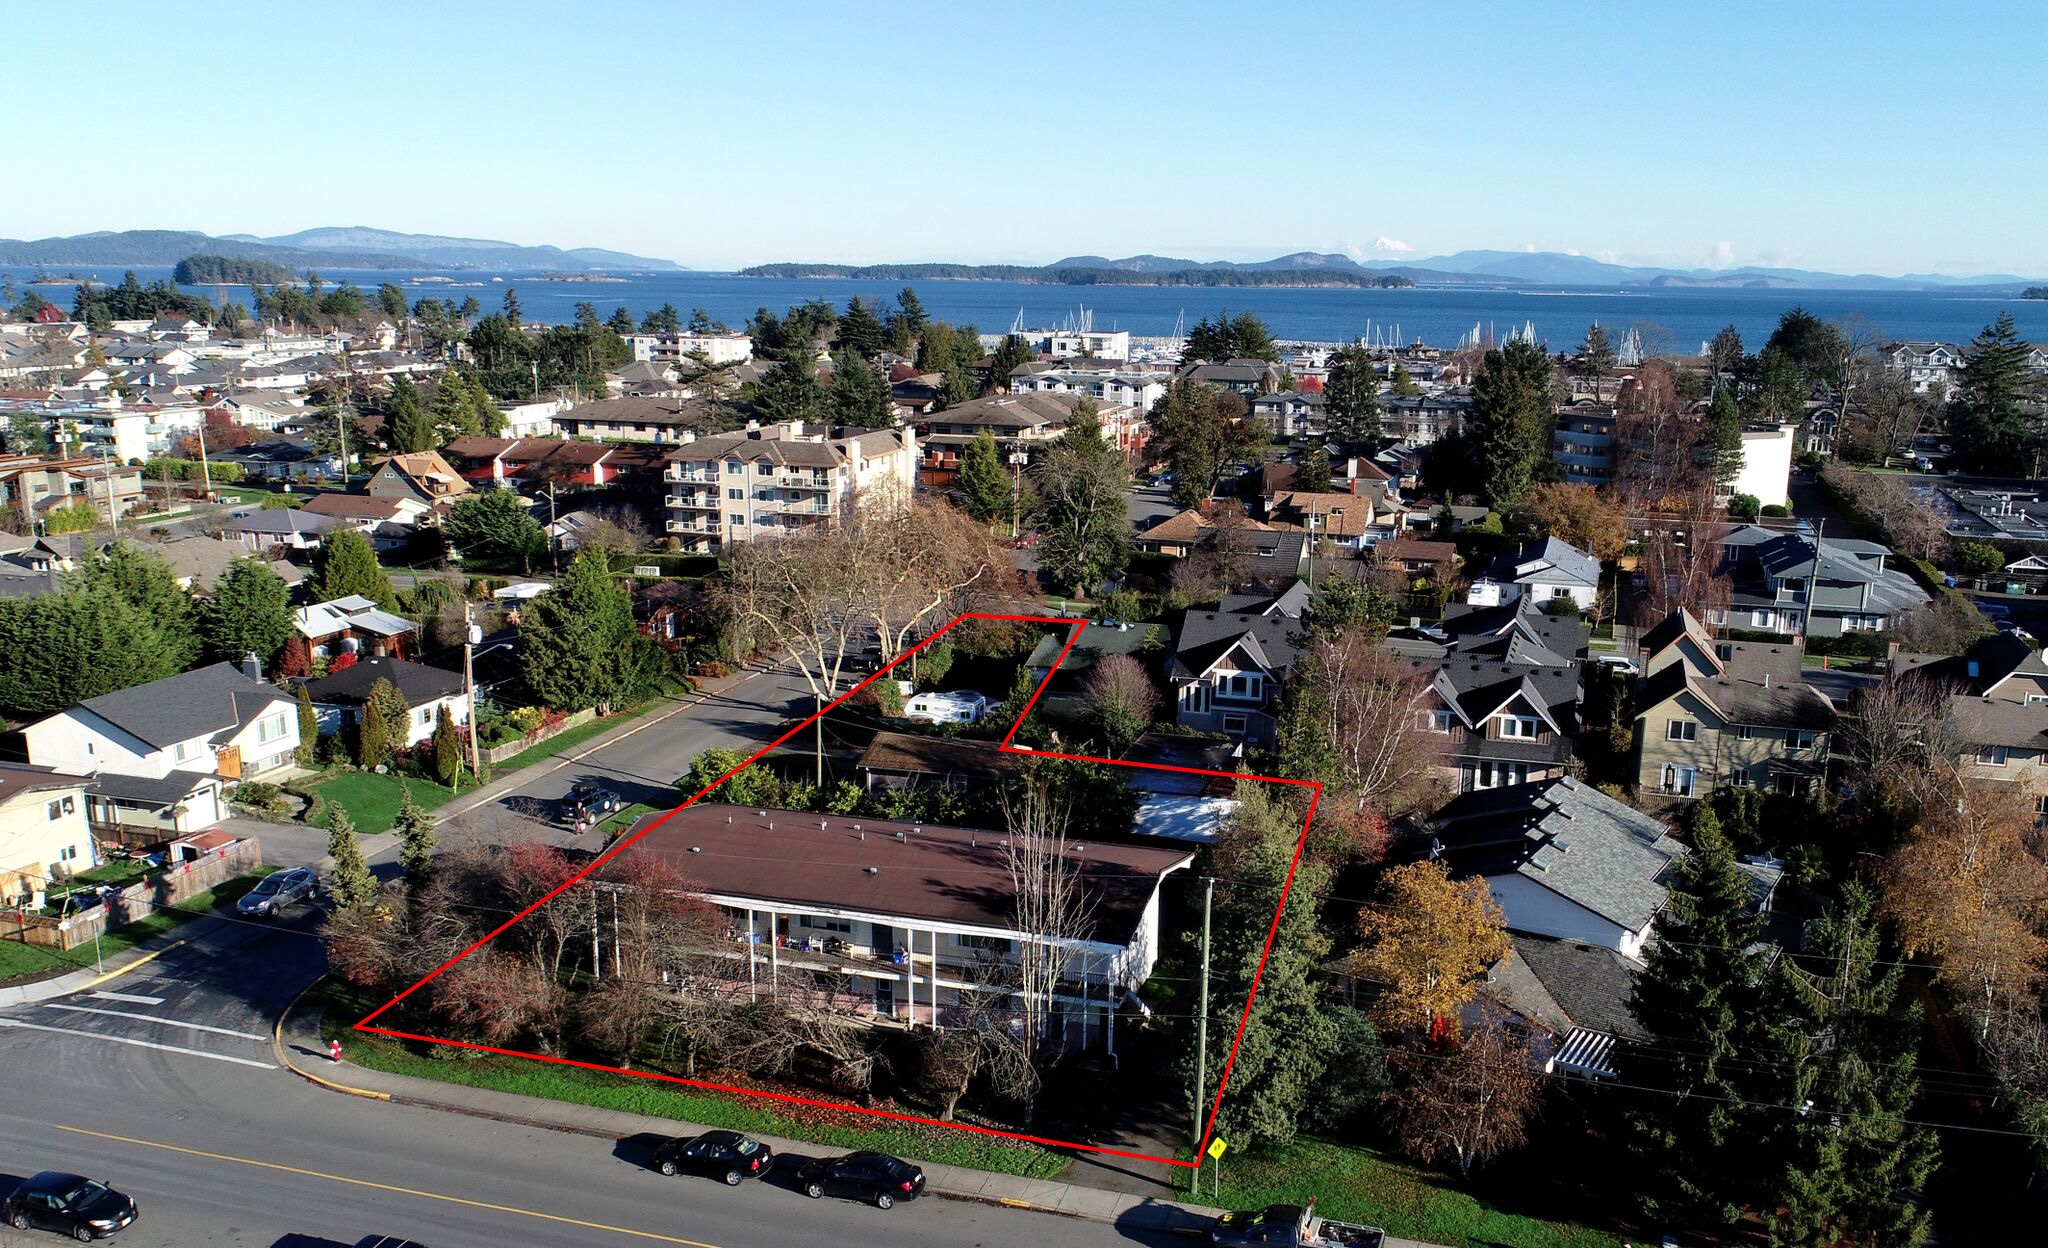 Aerial view of the Ravens Crossing Cohousing site at 2325 Brethour Street, Sidney